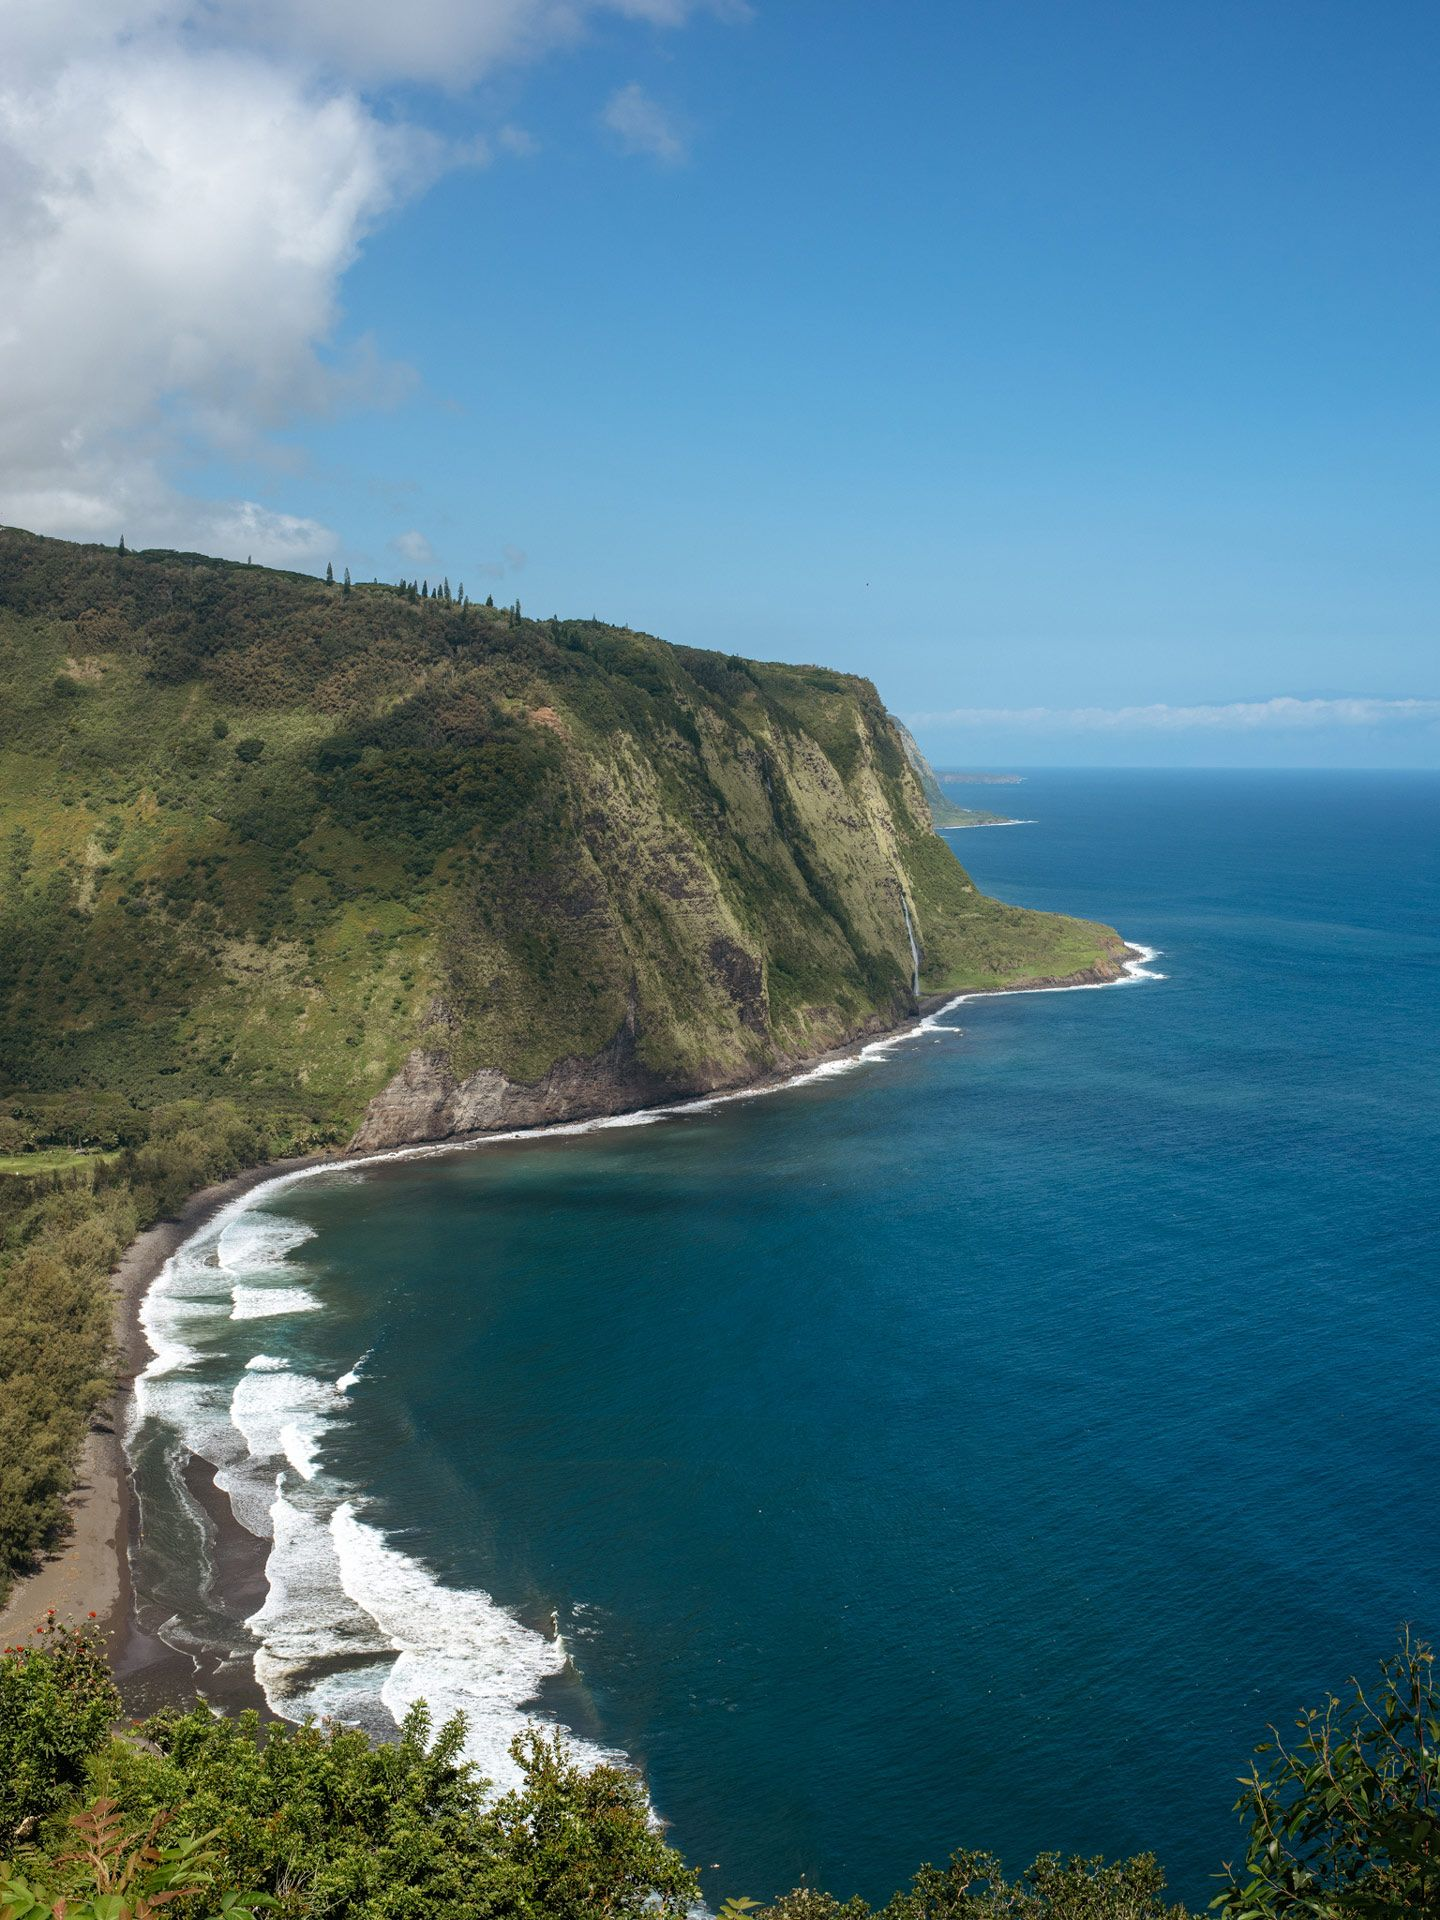 mountain side top view of Hawaii by Alexi Hobbs for enRoute